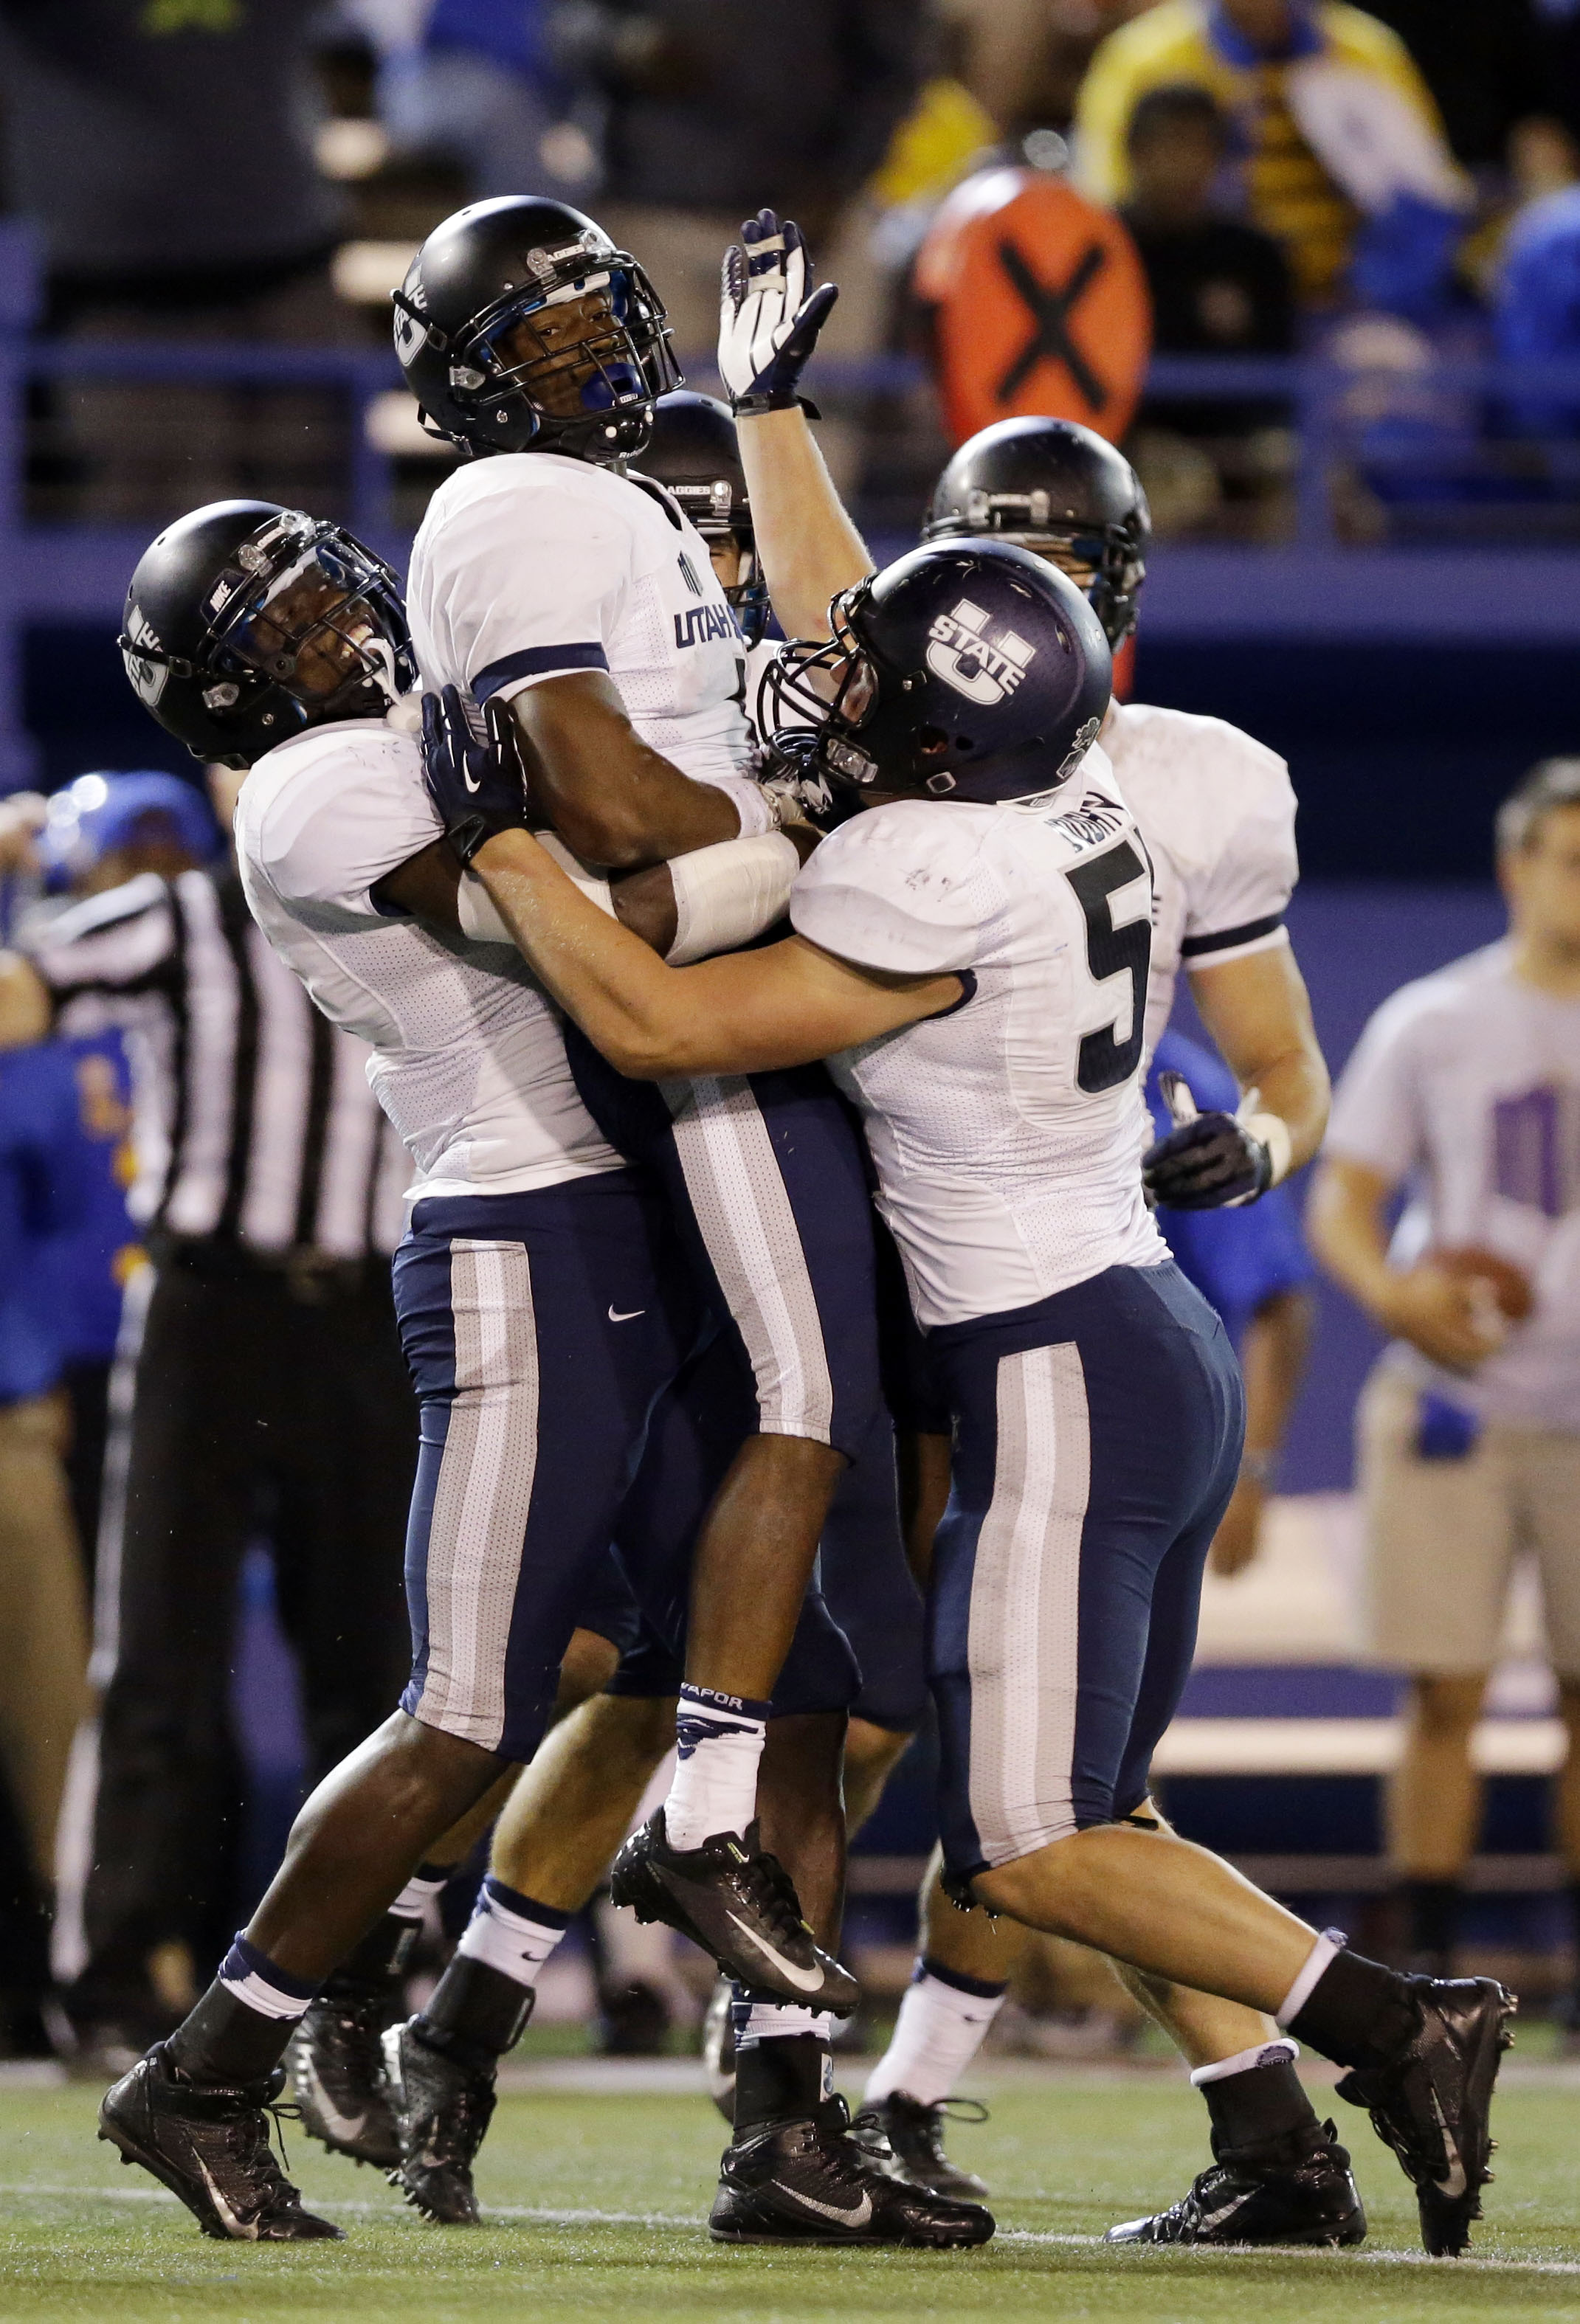 Utah State's Nevin Lawson, center, is lifted by teammates after intercepting a pass against San Jose State during the second half of an NCAA college football game on Friday, Sept. 27, 2013, in San Jose, Calif